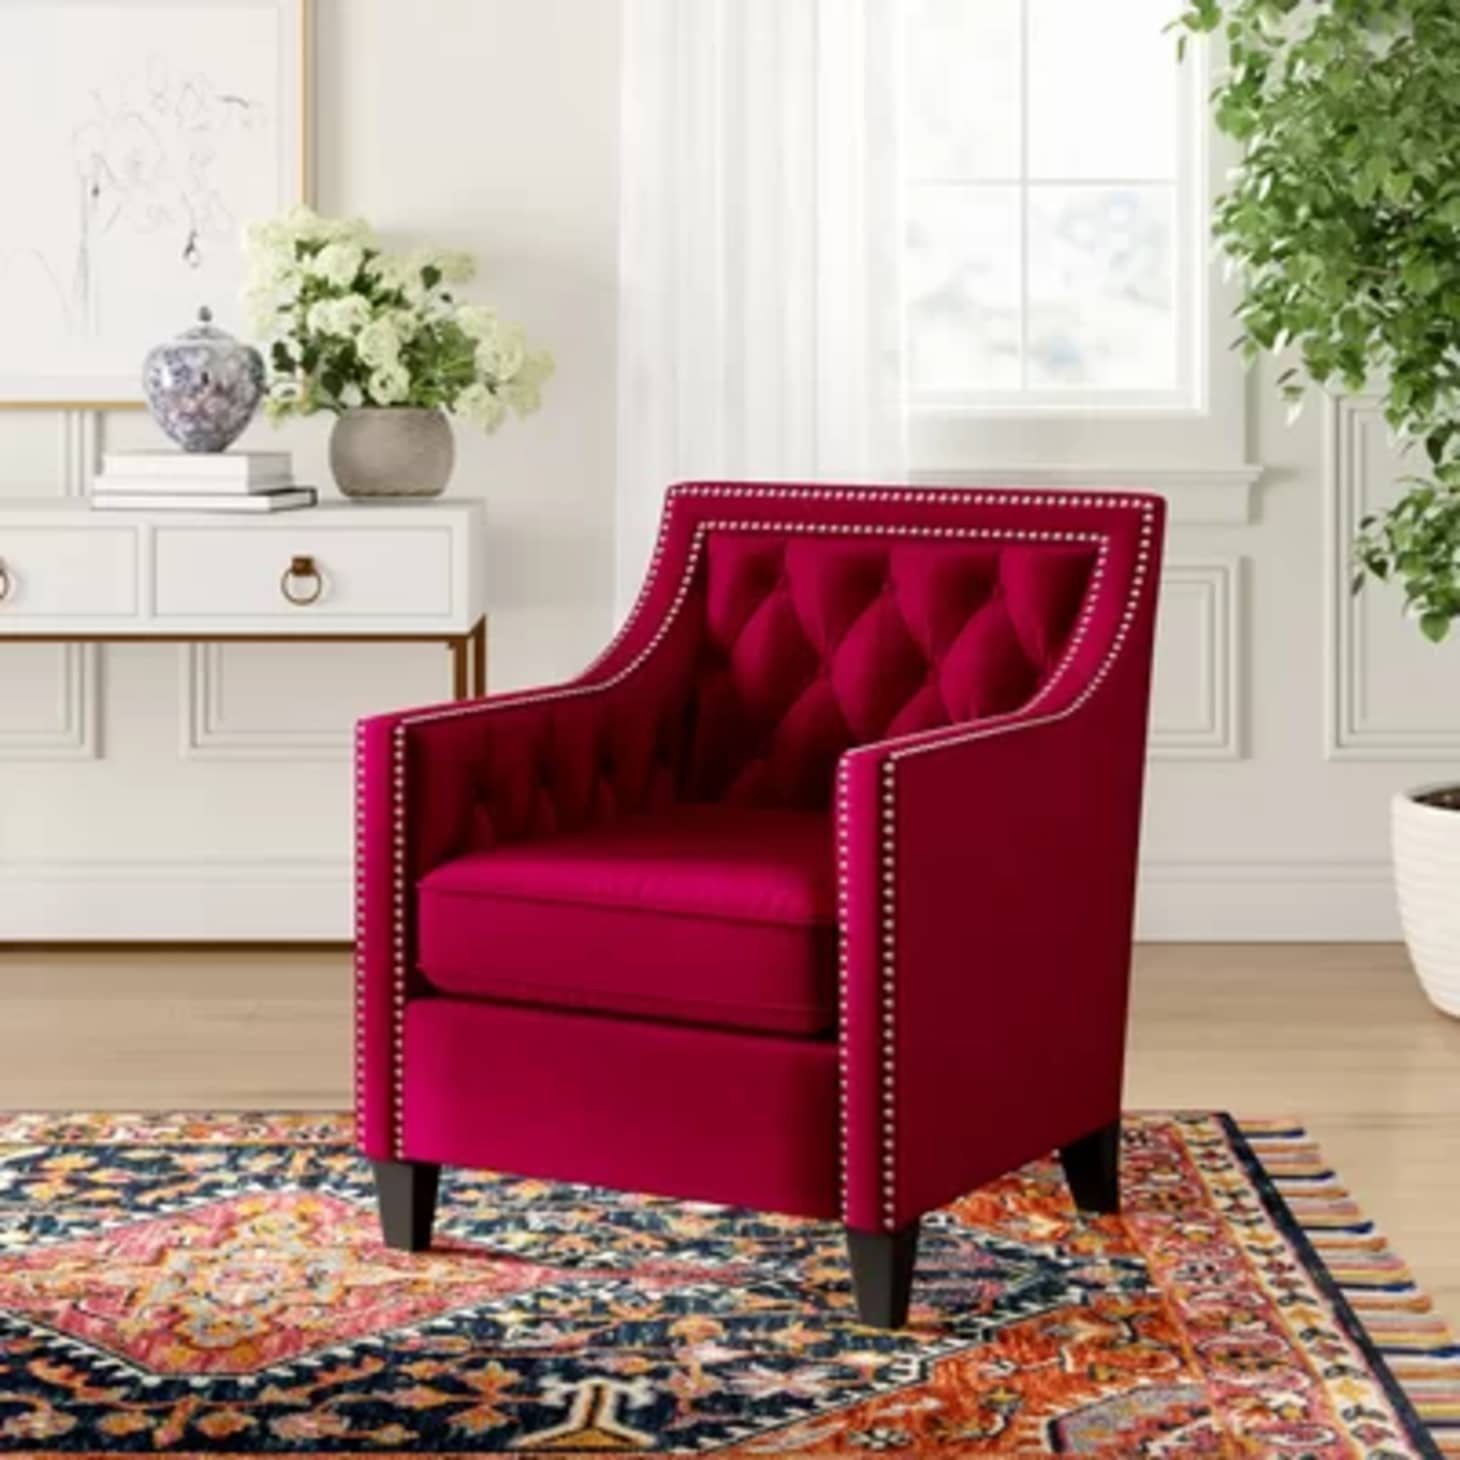 Prime The Best Furniture And Decor Essentials To Buy From Joss Squirreltailoven Fun Painted Chair Ideas Images Squirreltailovenorg